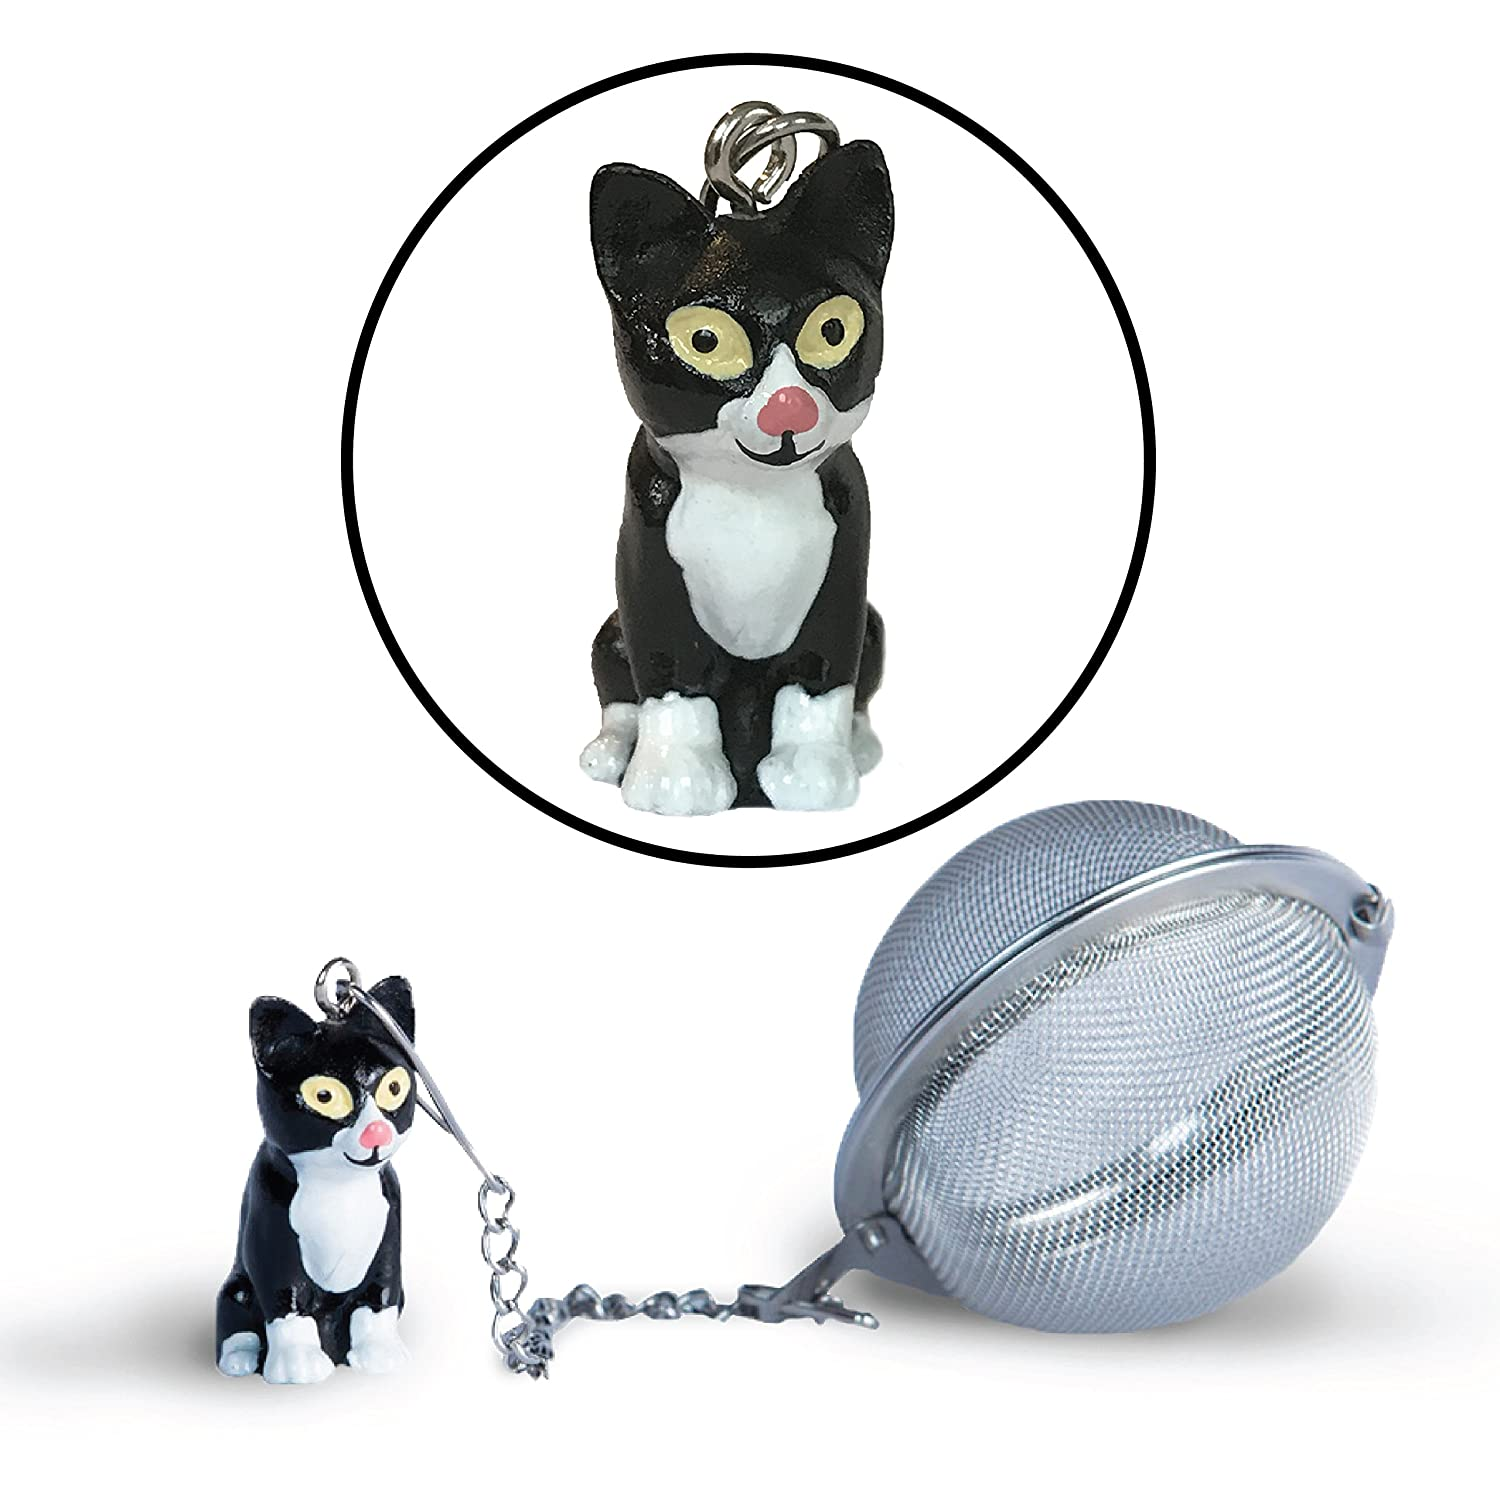 Cat Tea Ball Infuser – Black Cat | Stainless Steel Strainers - Great Gift for Tea and Cat Lovers by Simply Charmed